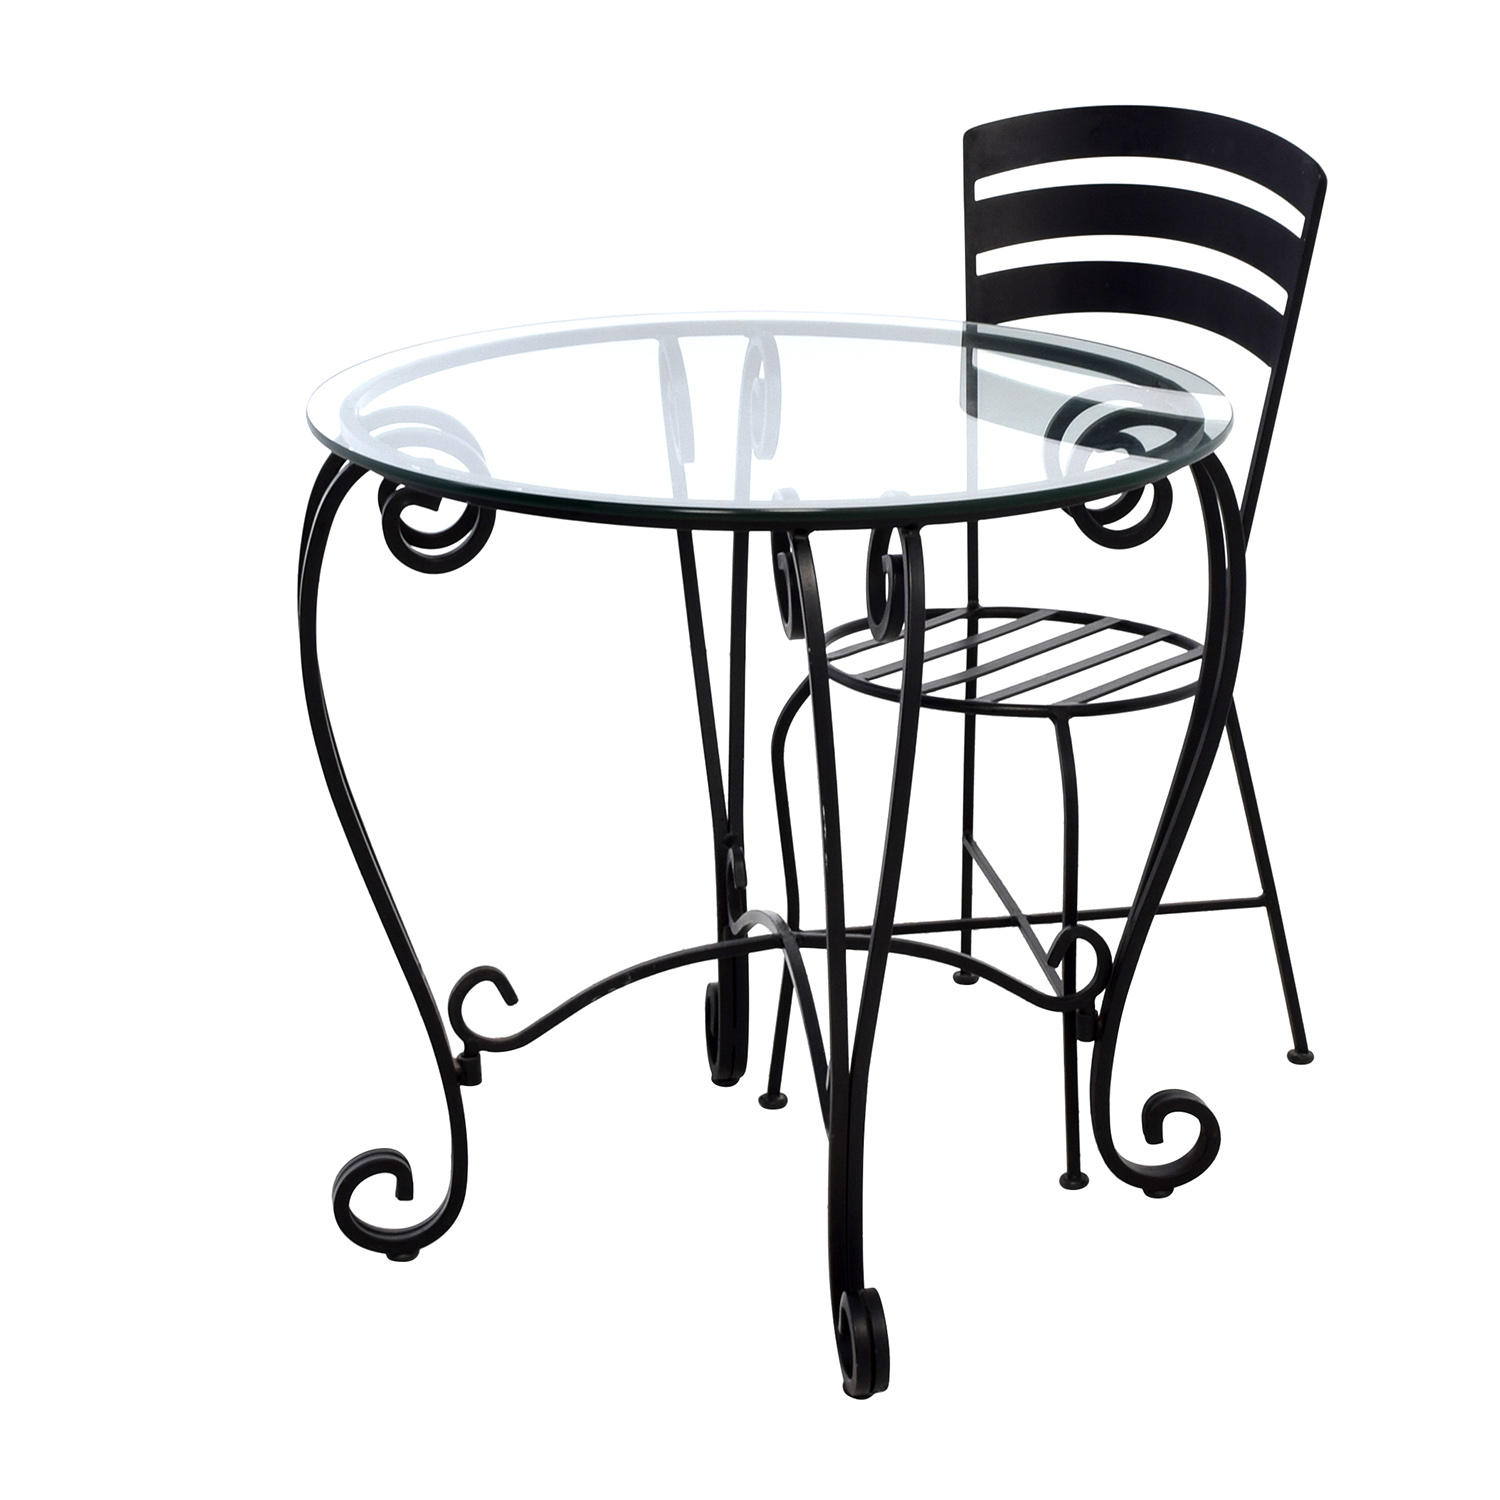 71 off wrought iron round glass top breakfast table for Round glass top coffee table wrought iron